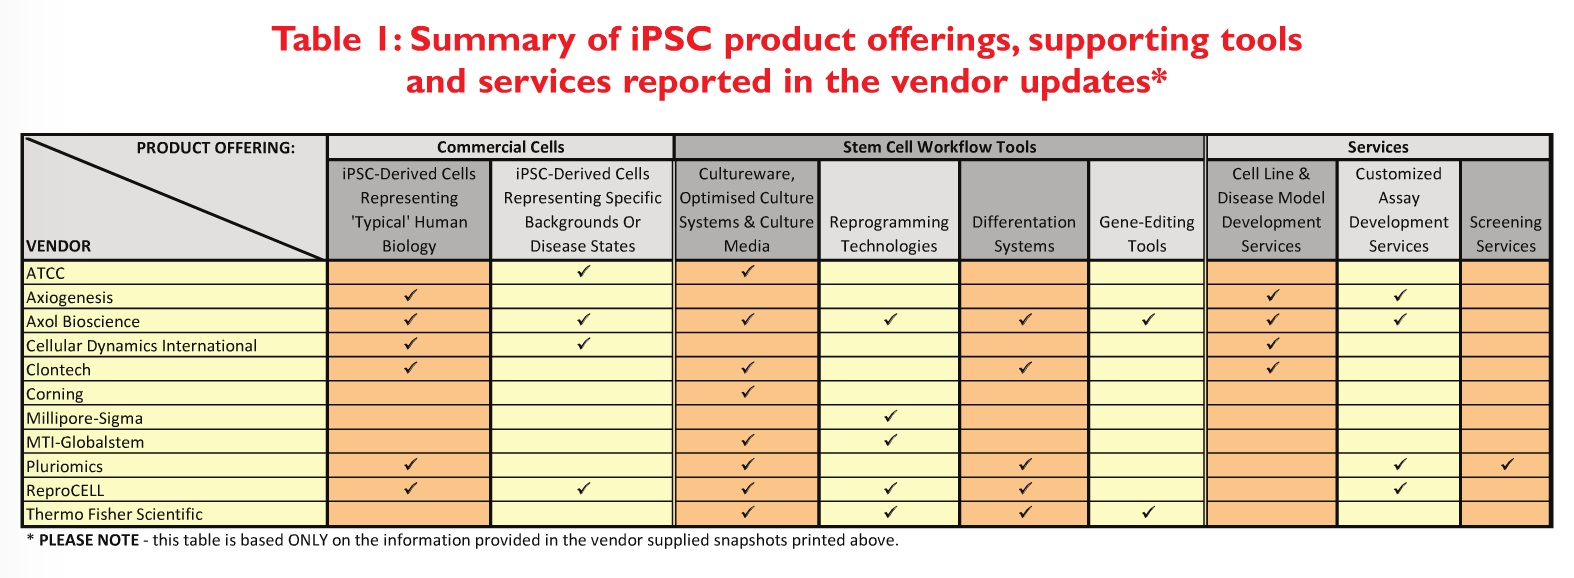 Table 1 Summary of iPSC product offerings, supporting tools and services reported in vendor updates